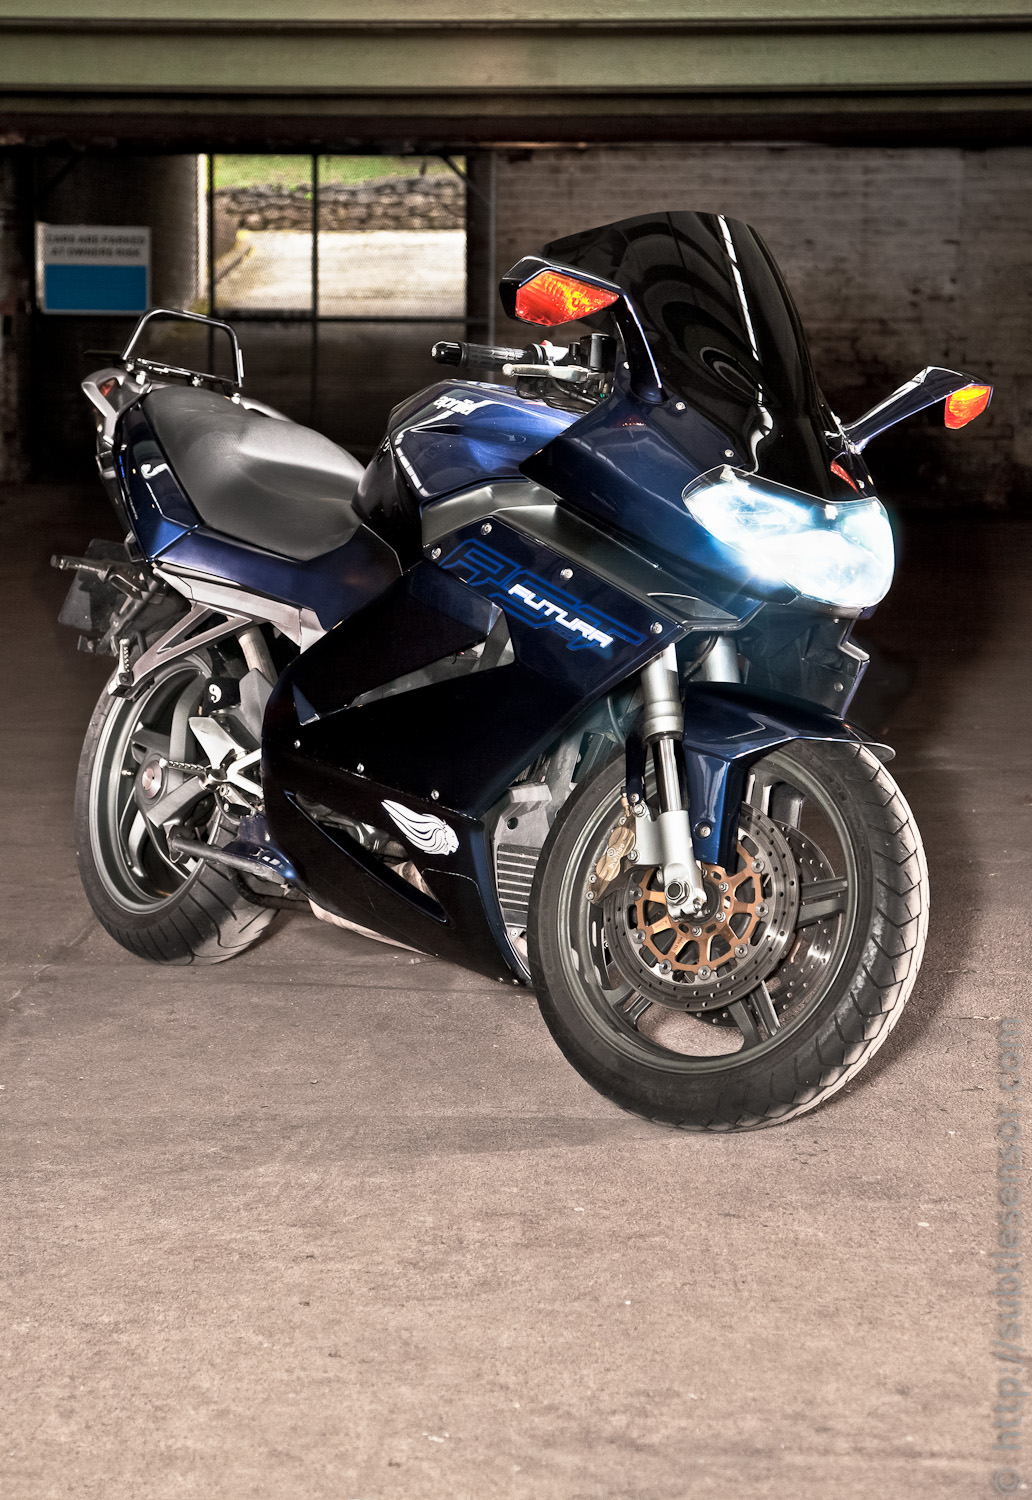 The Fut, The Ape, the 1000cc Sports Tourer - in blue